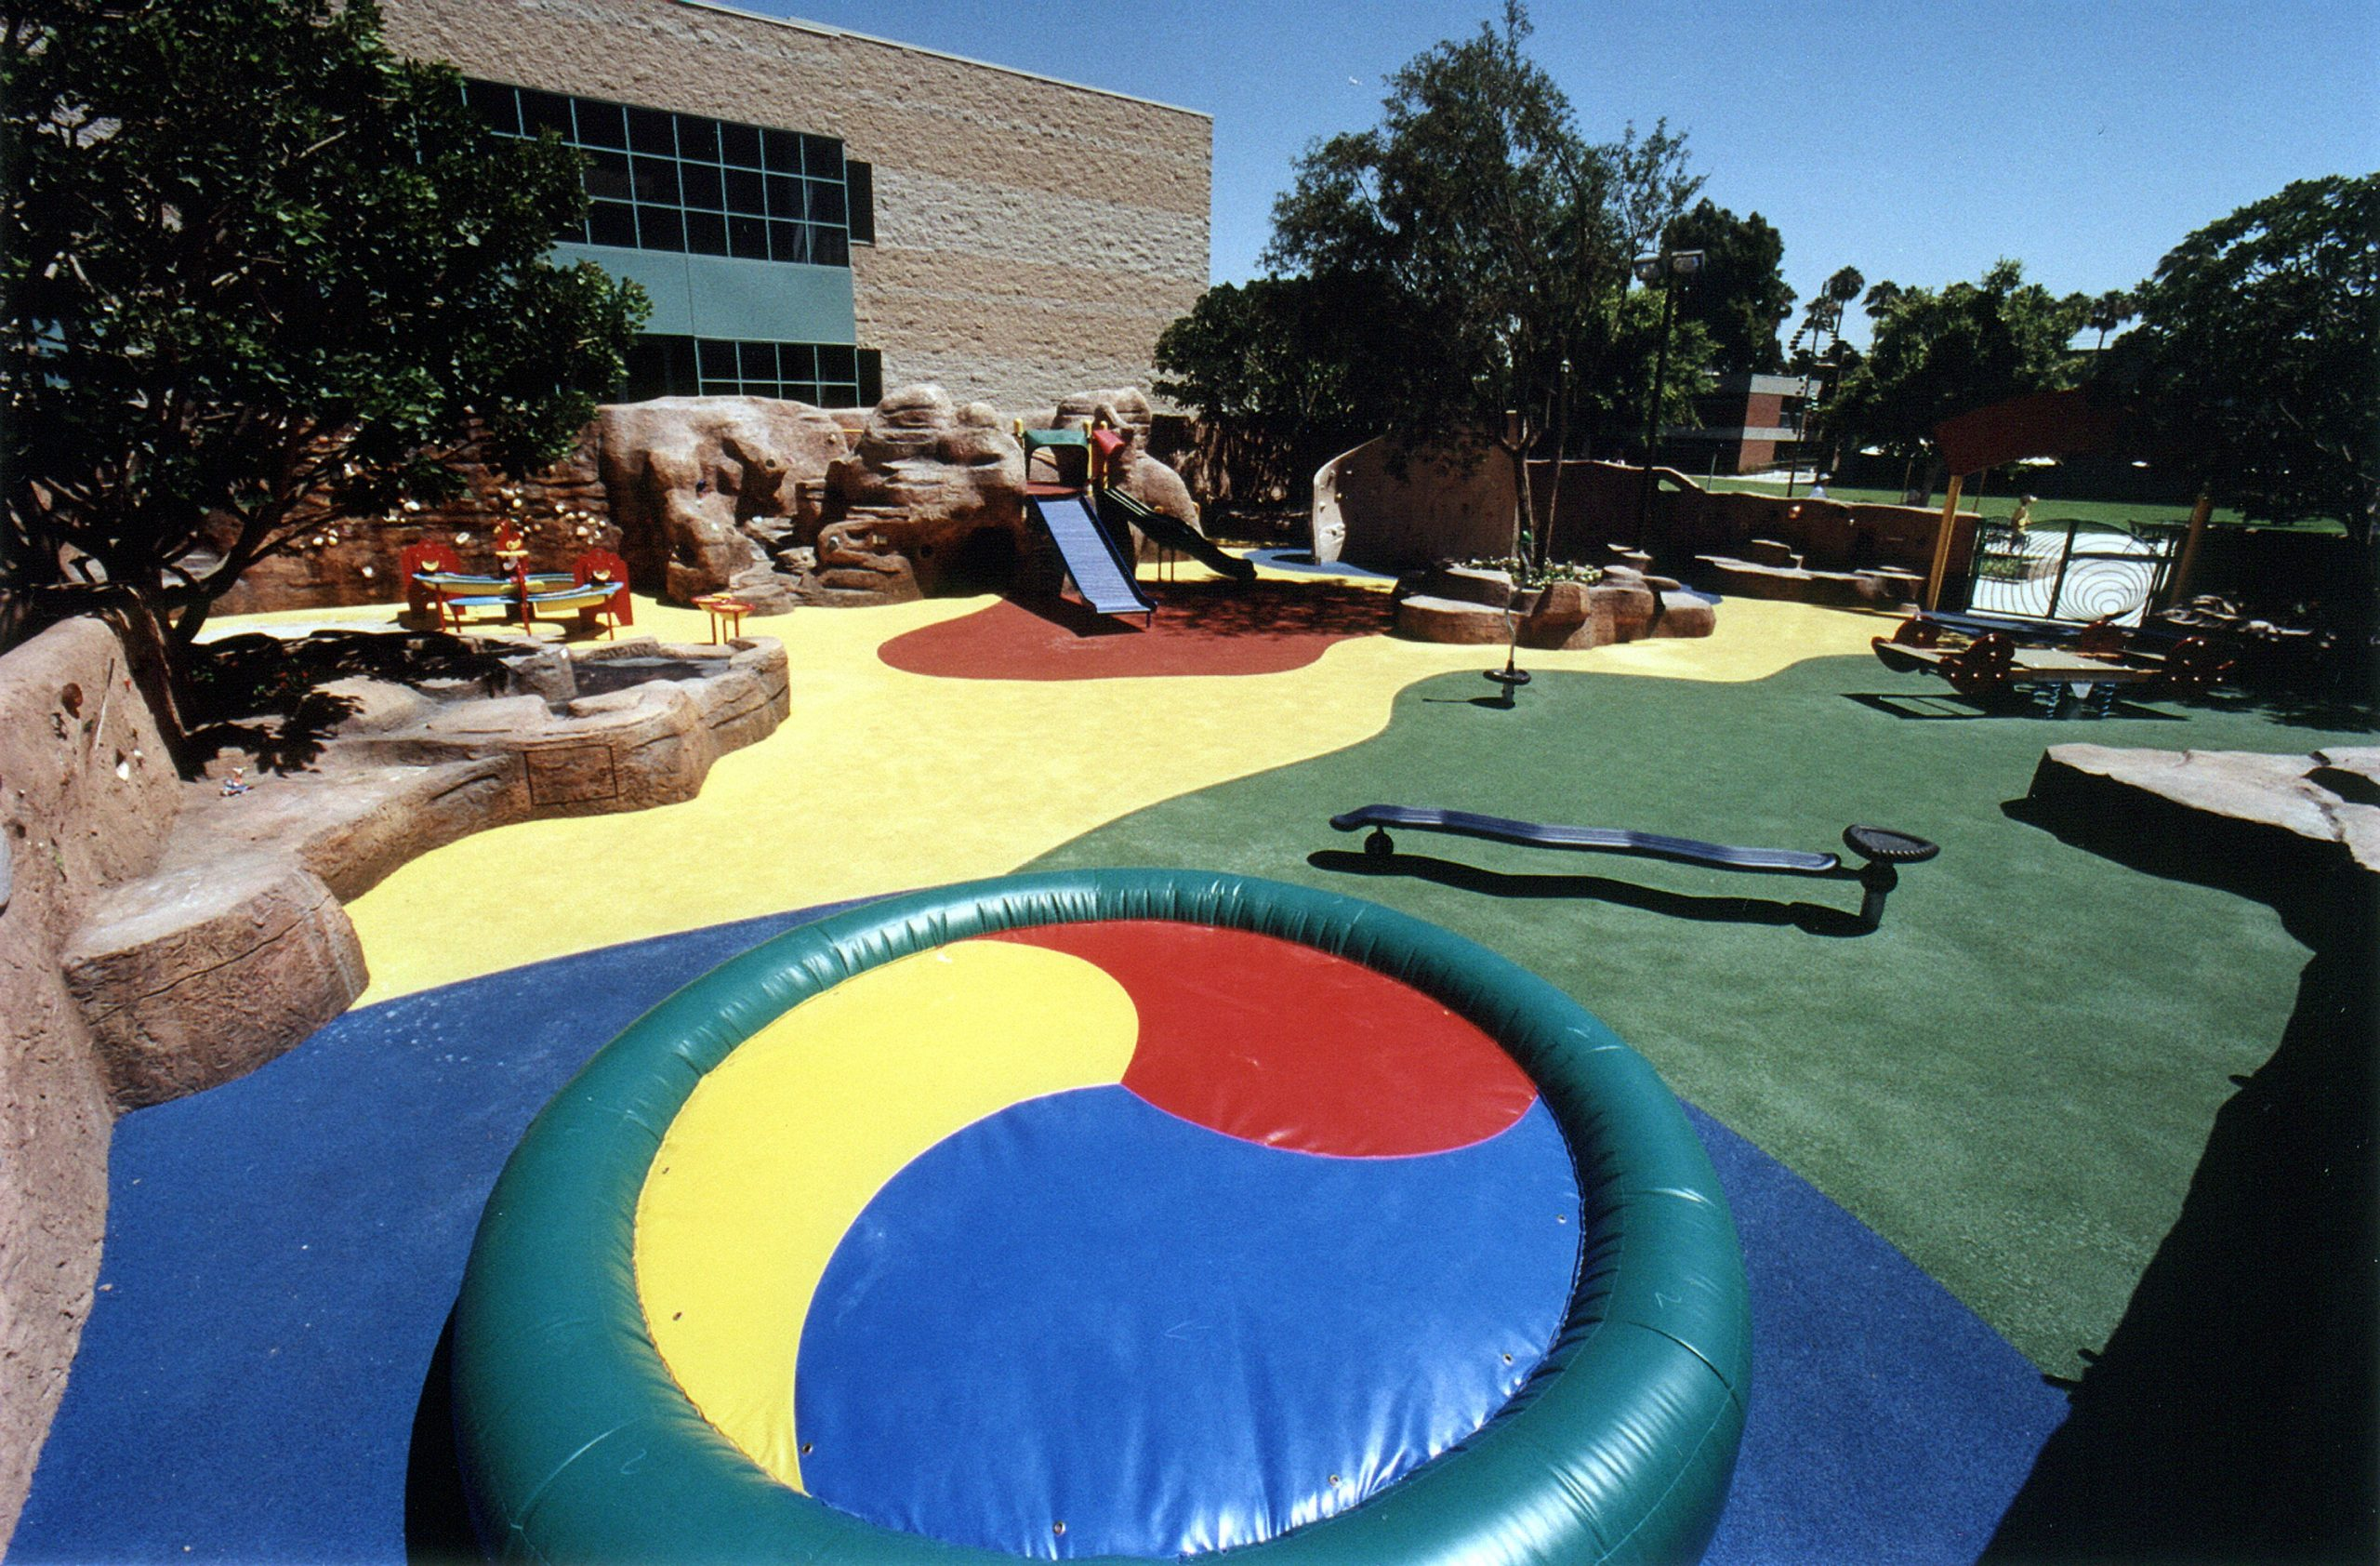 Experimental Playground – Foundation for the Junior Blind